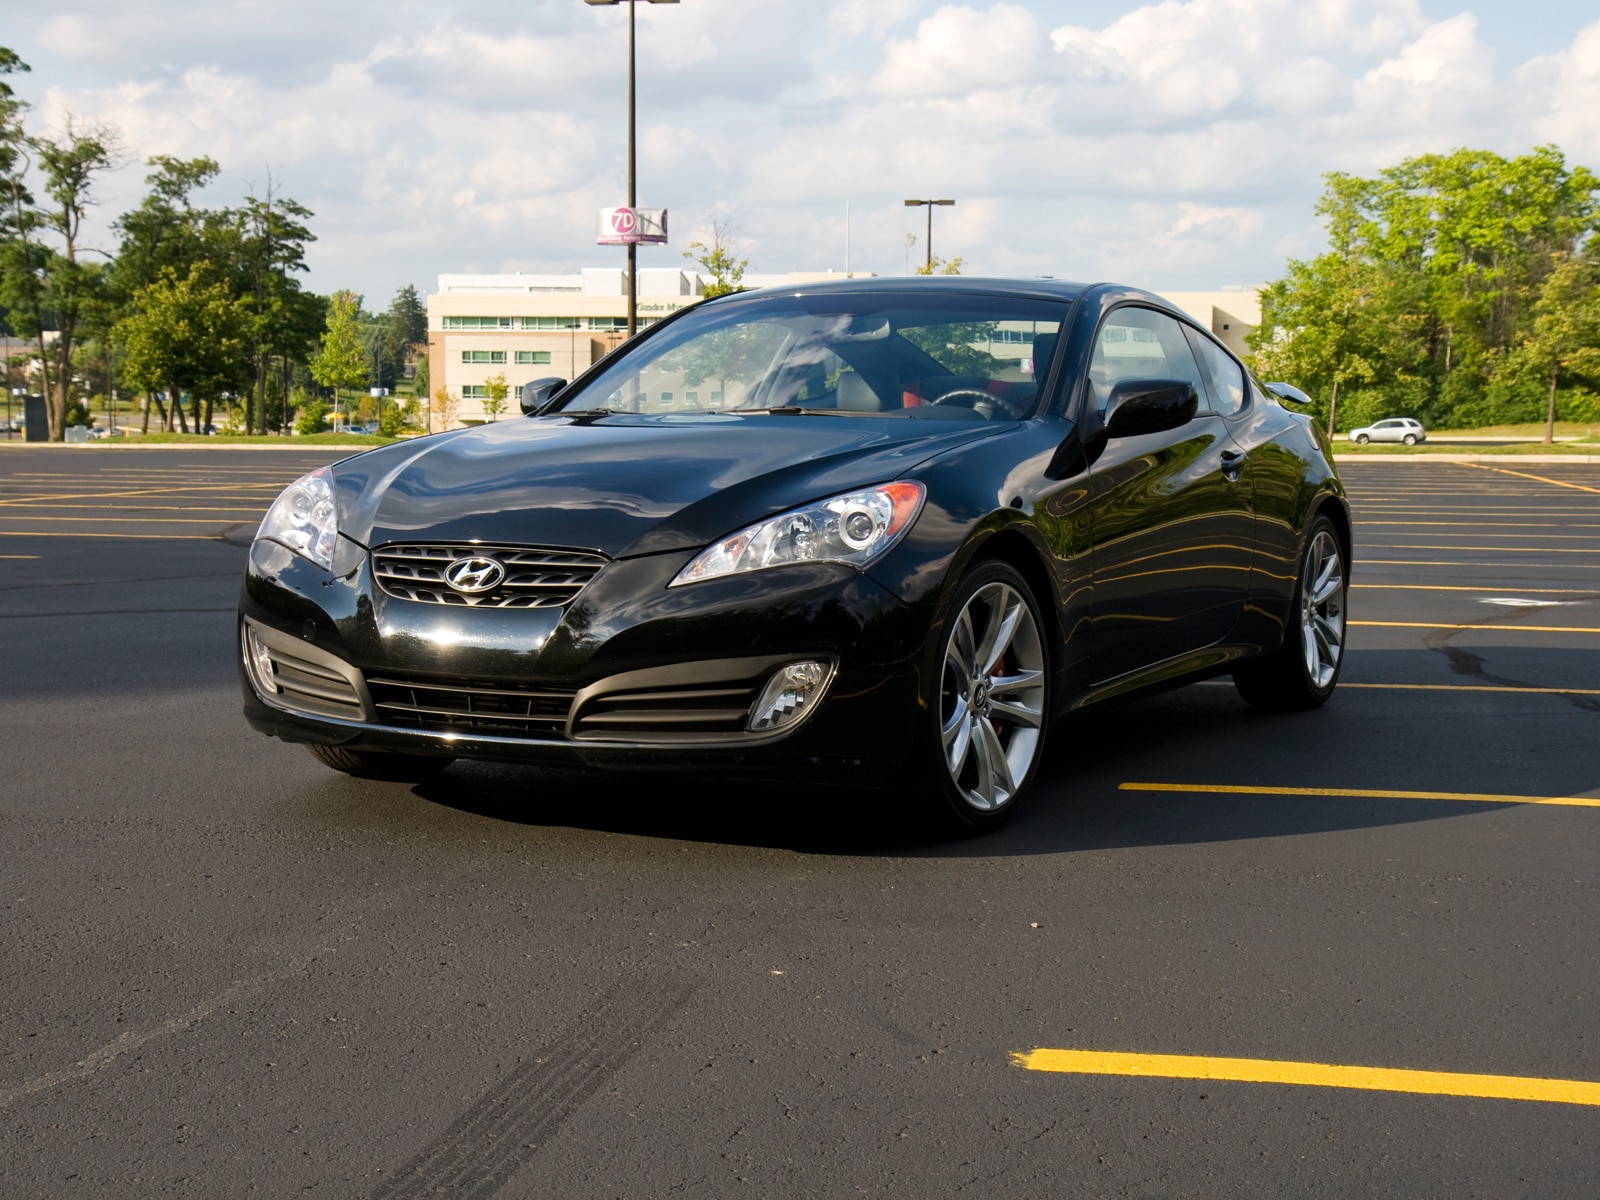 2010 hyundai genesis coupe 2 0t track pack hyundai sports coupe review automobile magazine. Black Bedroom Furniture Sets. Home Design Ideas